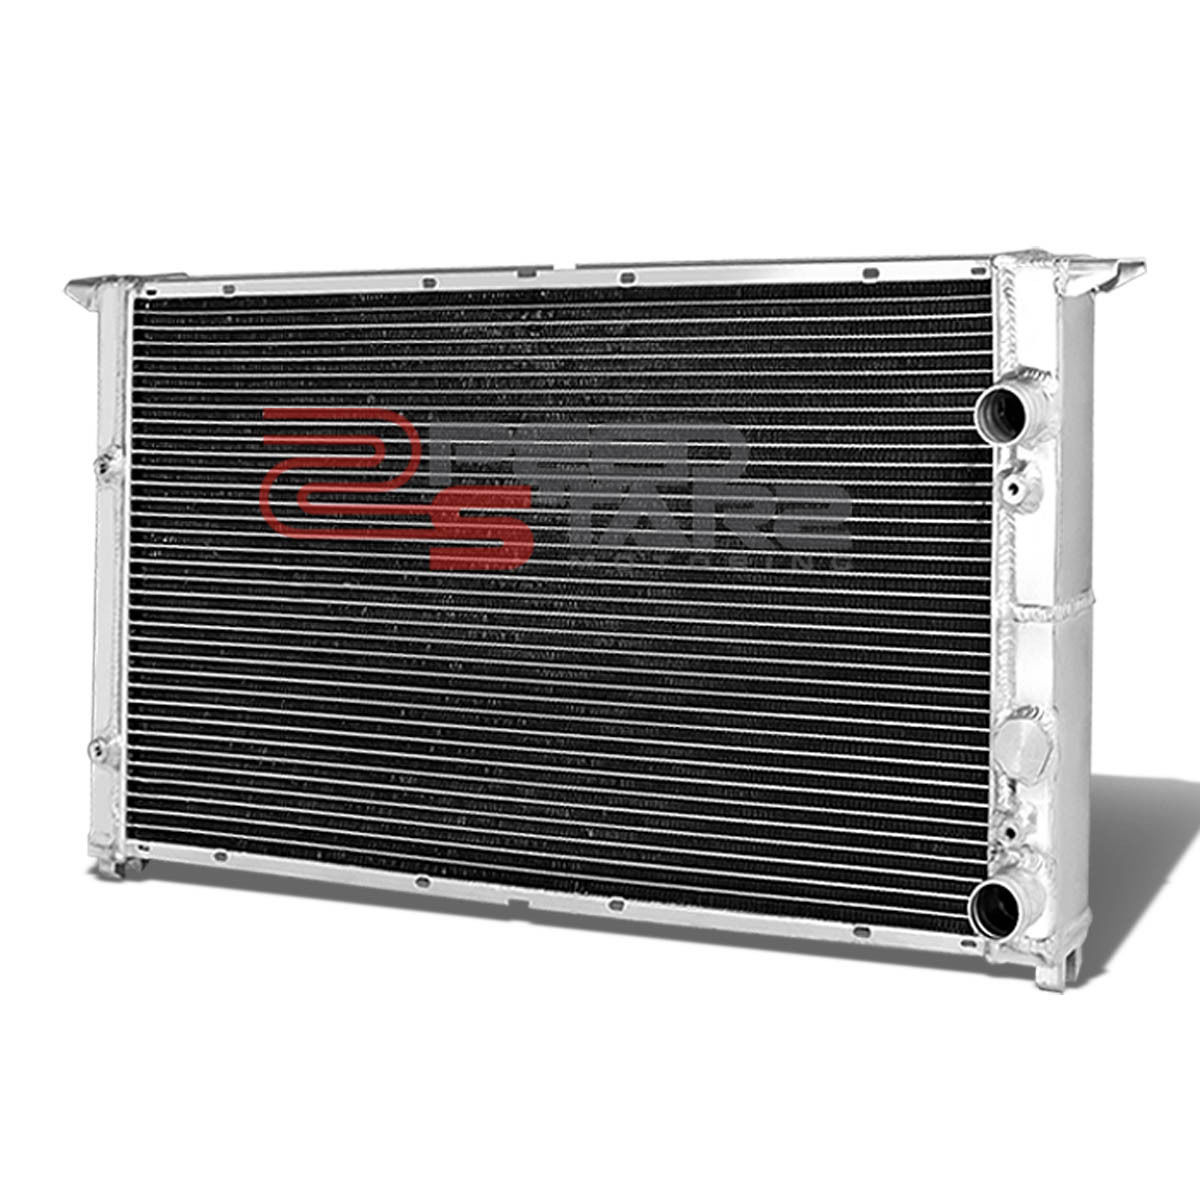 hight resolution of volkswagen golf gti vr6 mk3 mt two dual row core full aluminum chrome radiator